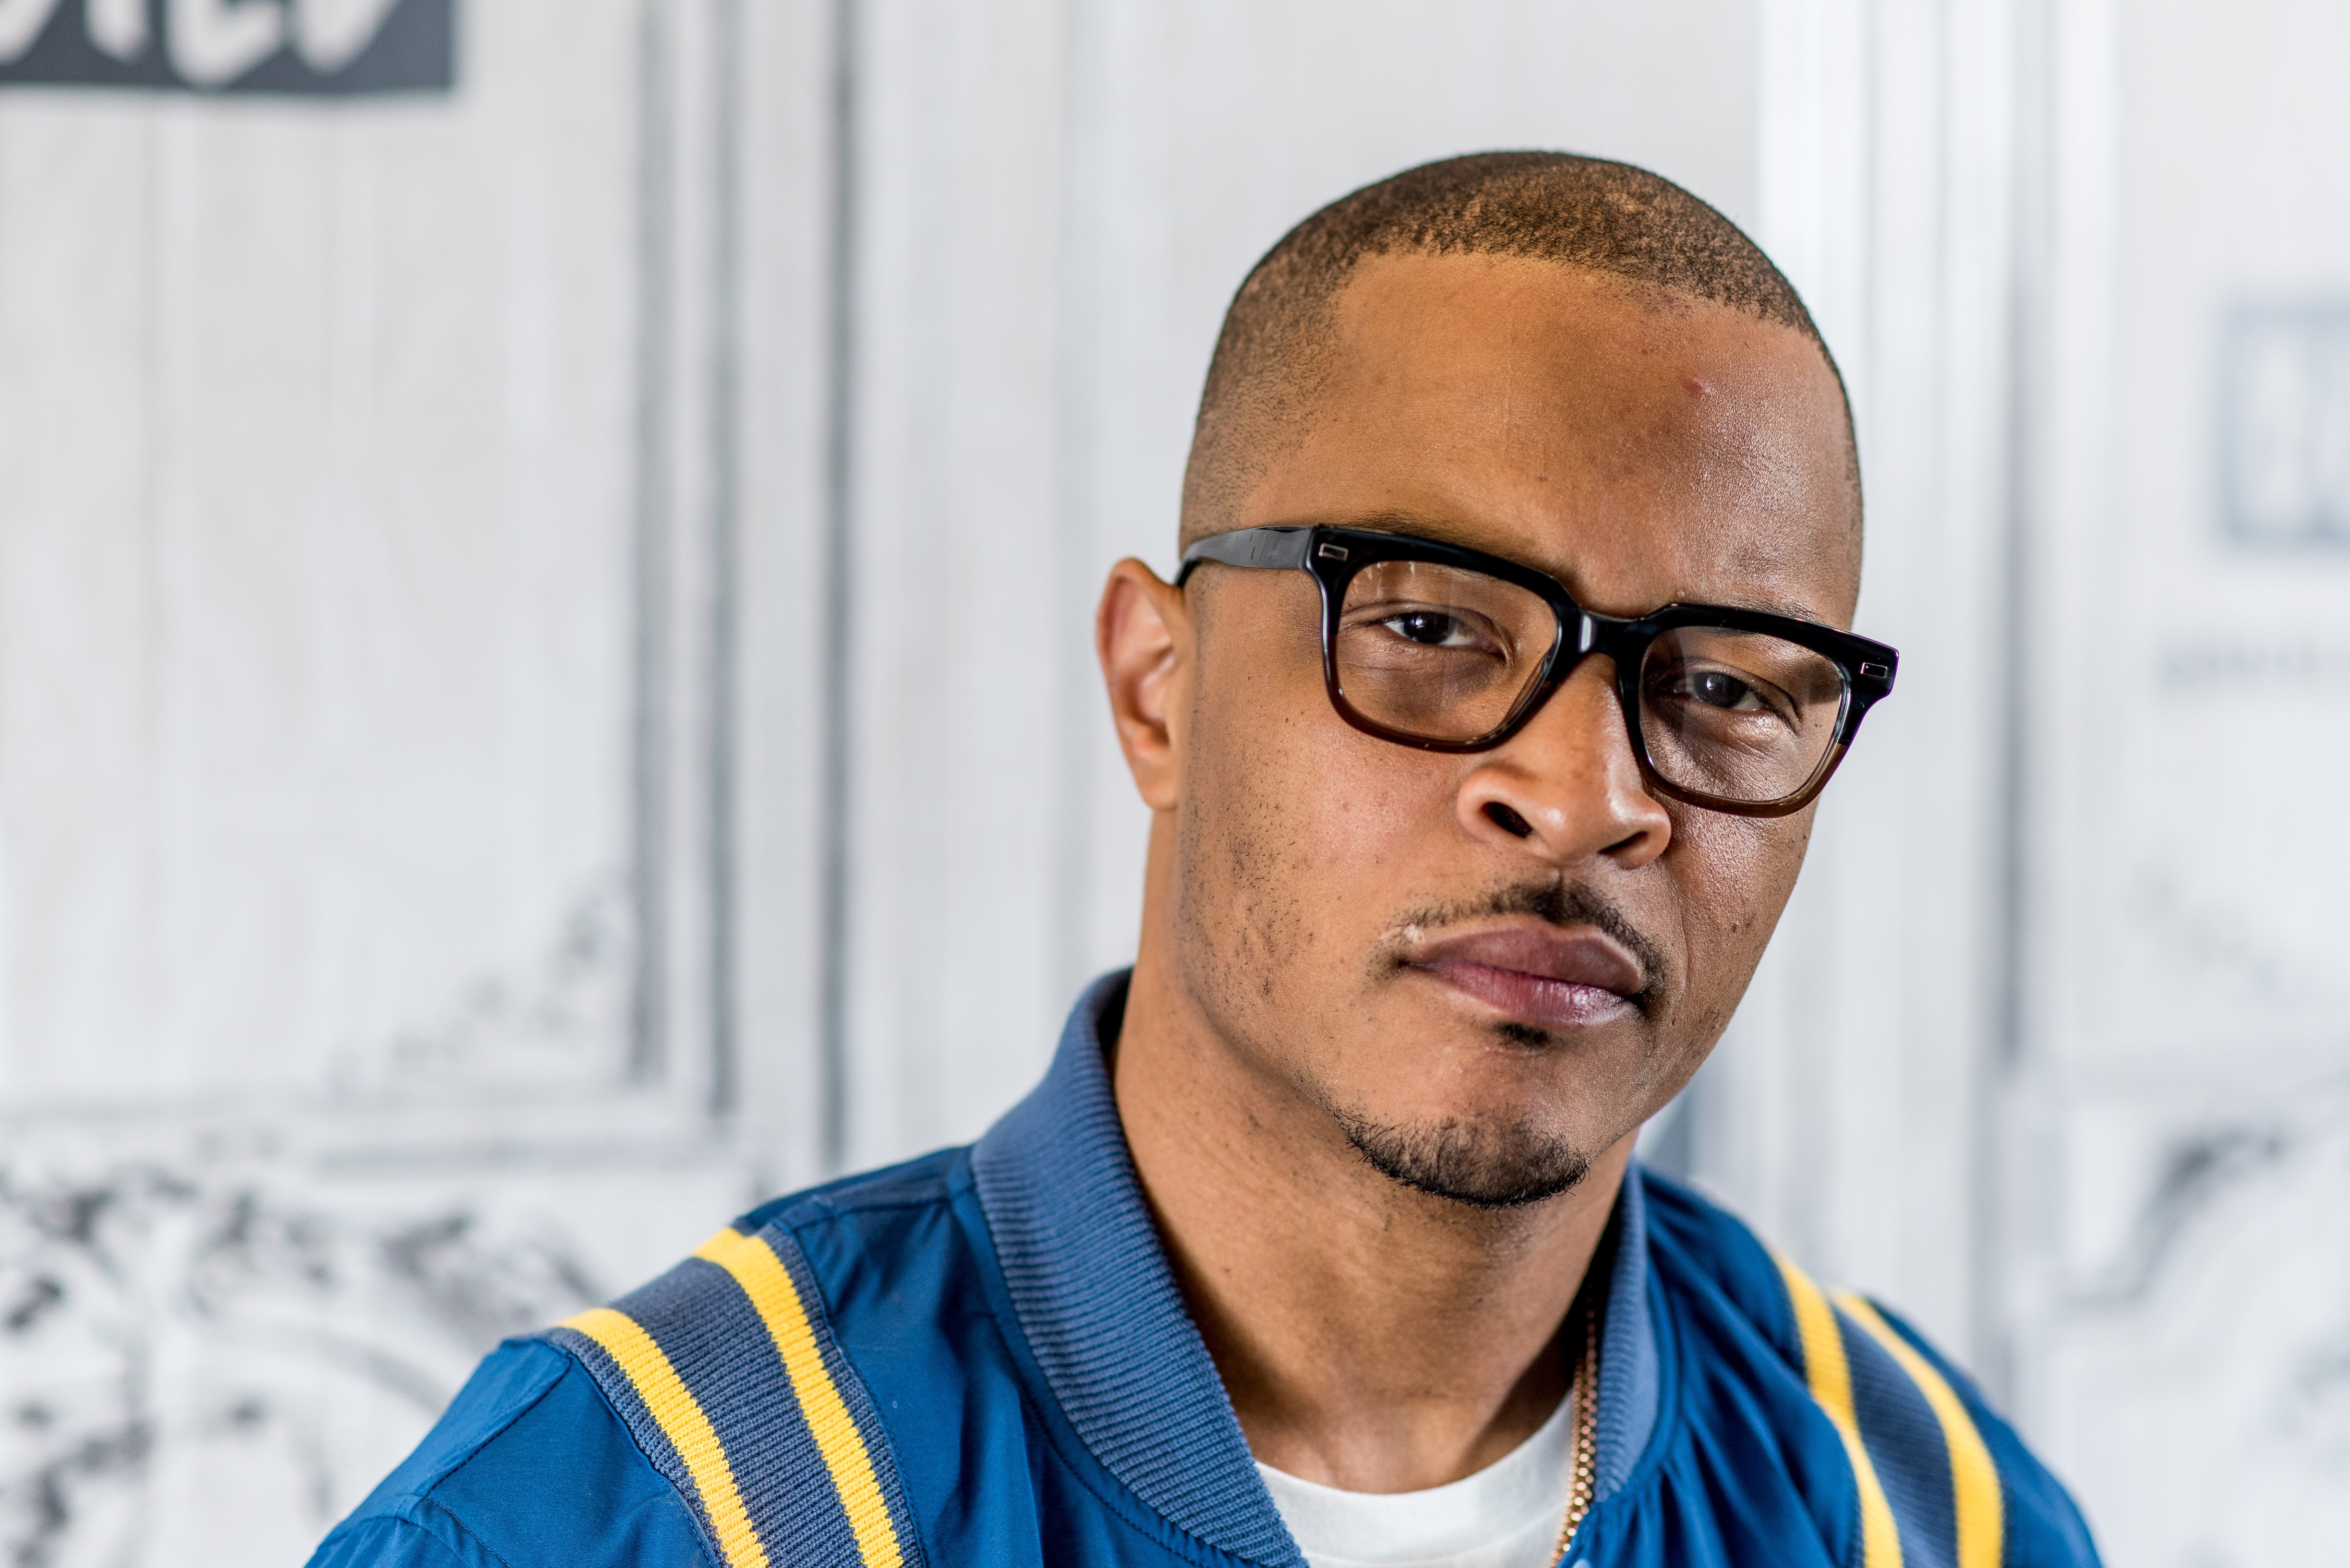 Police Report Details Events Leading To T.I.'s Arrest, Security Guard Said He Felt Threatened